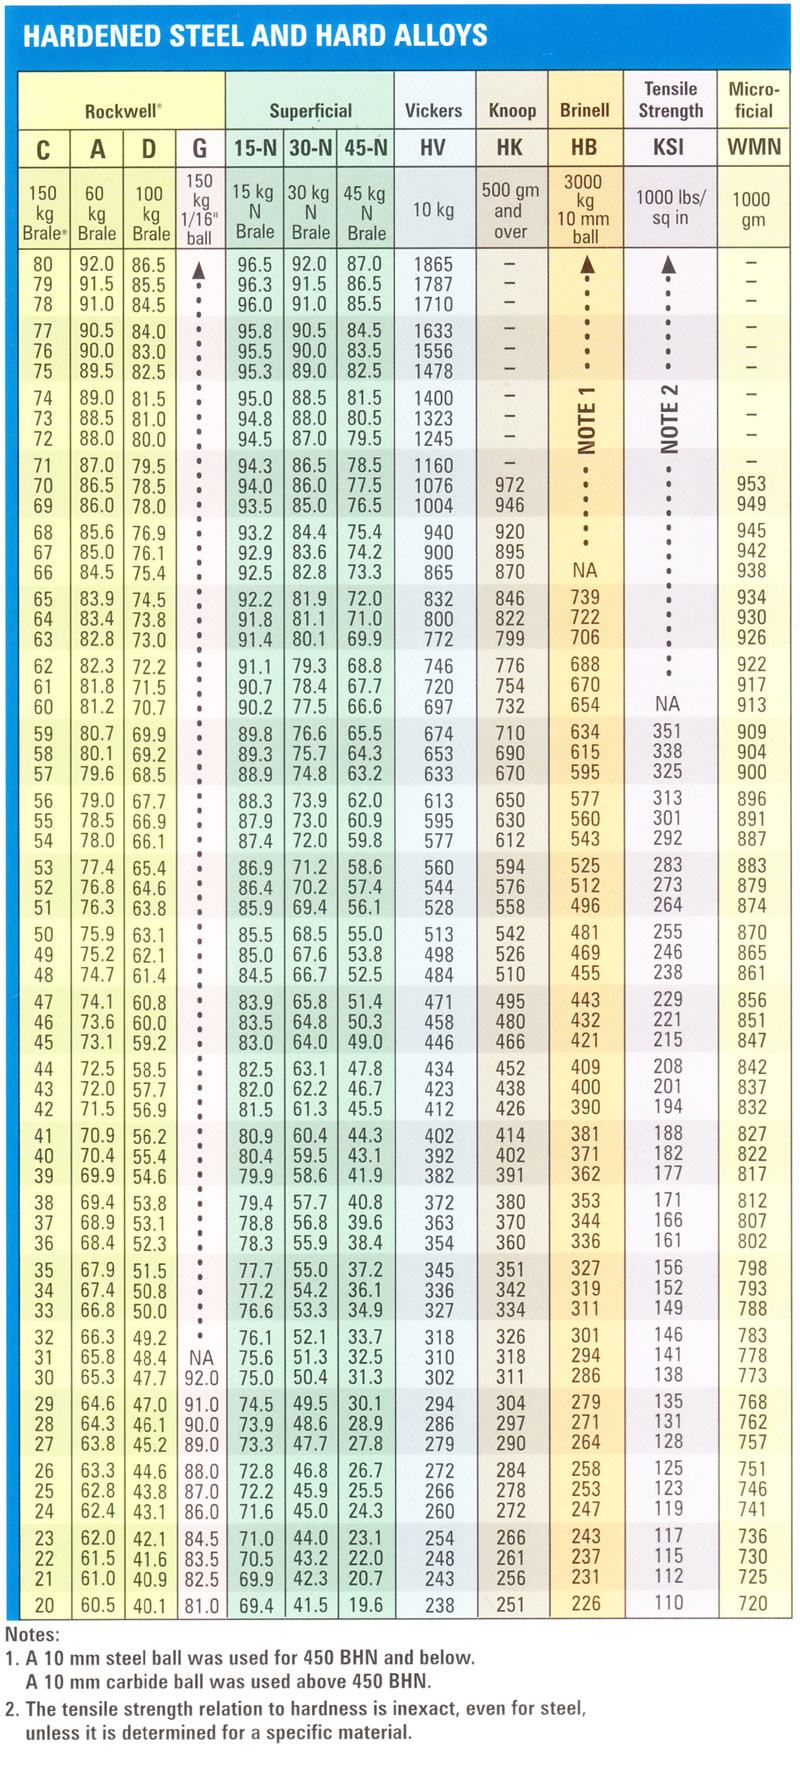 Hardness Conversion Chart Rockwell Quot C Quot Hardness Range